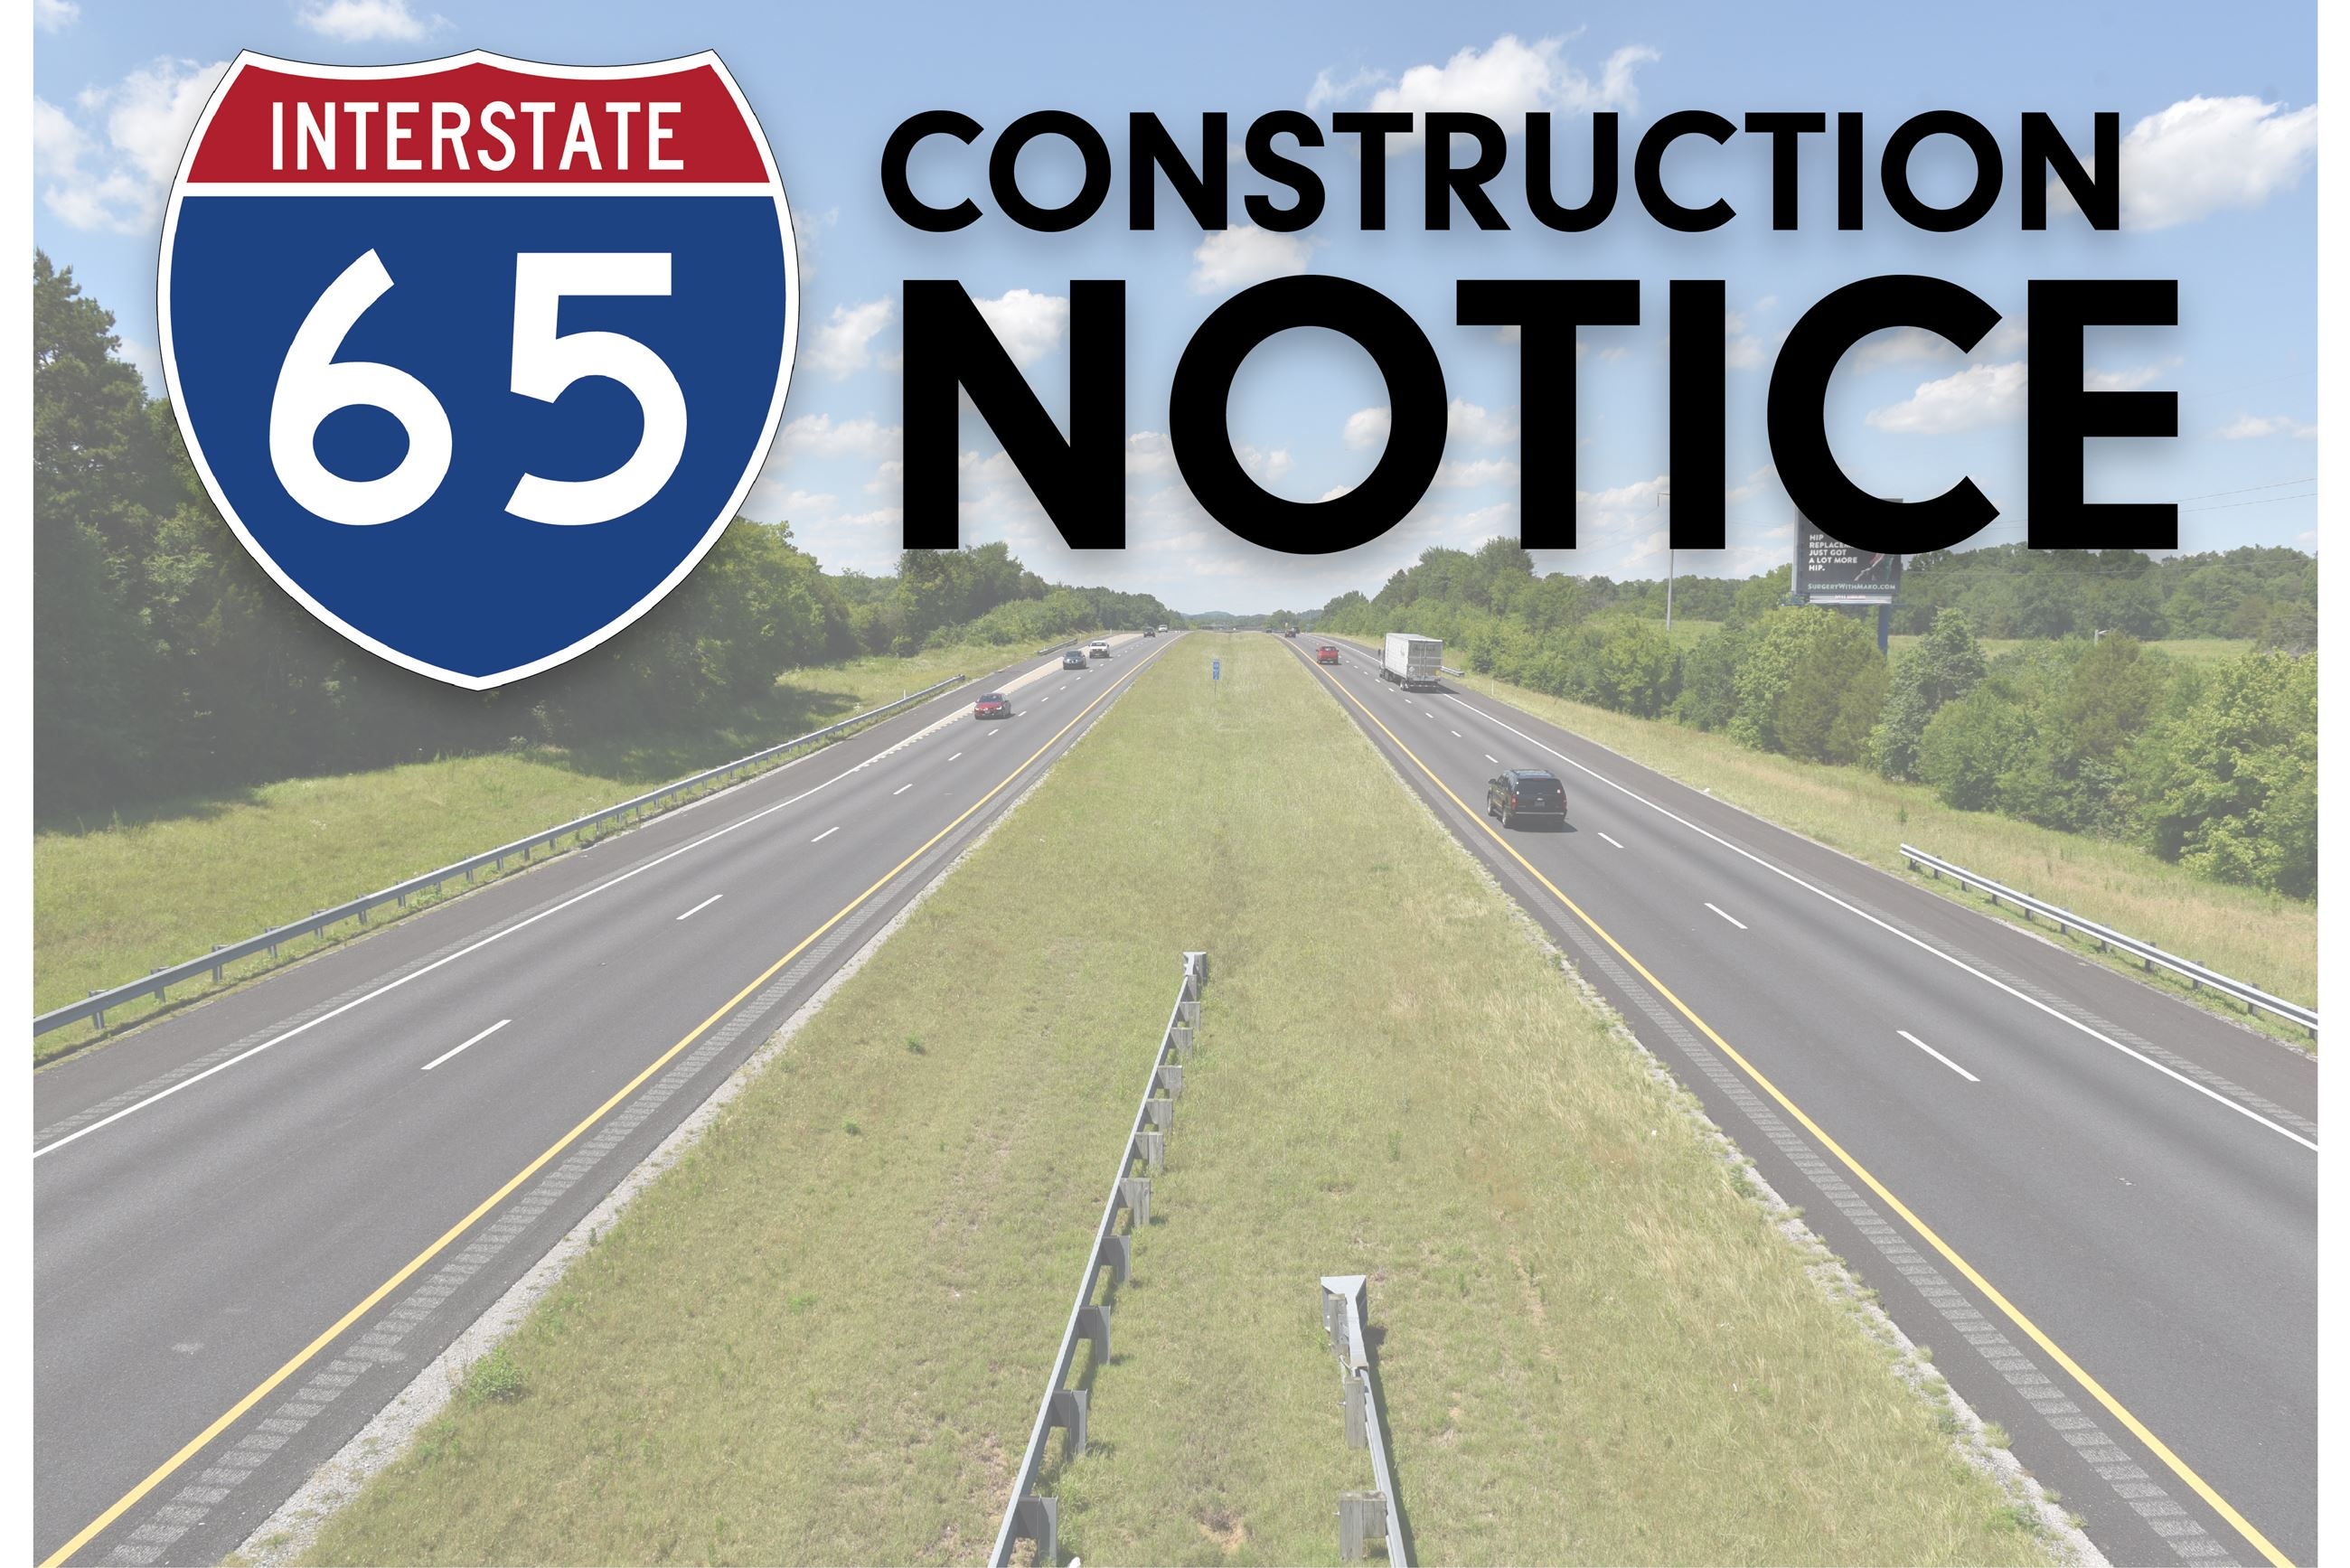 I-65 Construction Notice